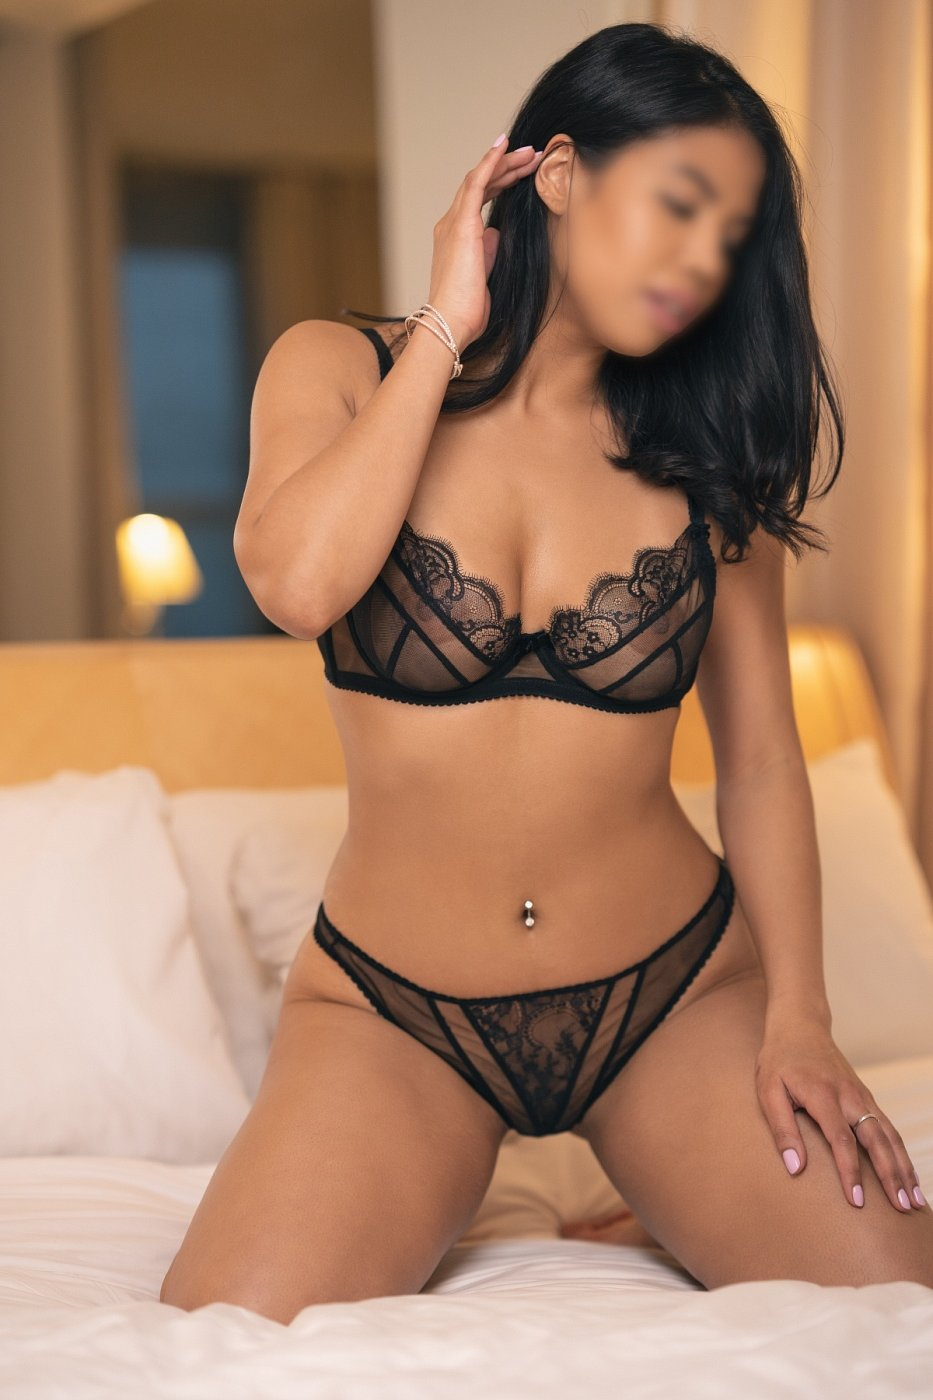 cheap escorts & erotic massage